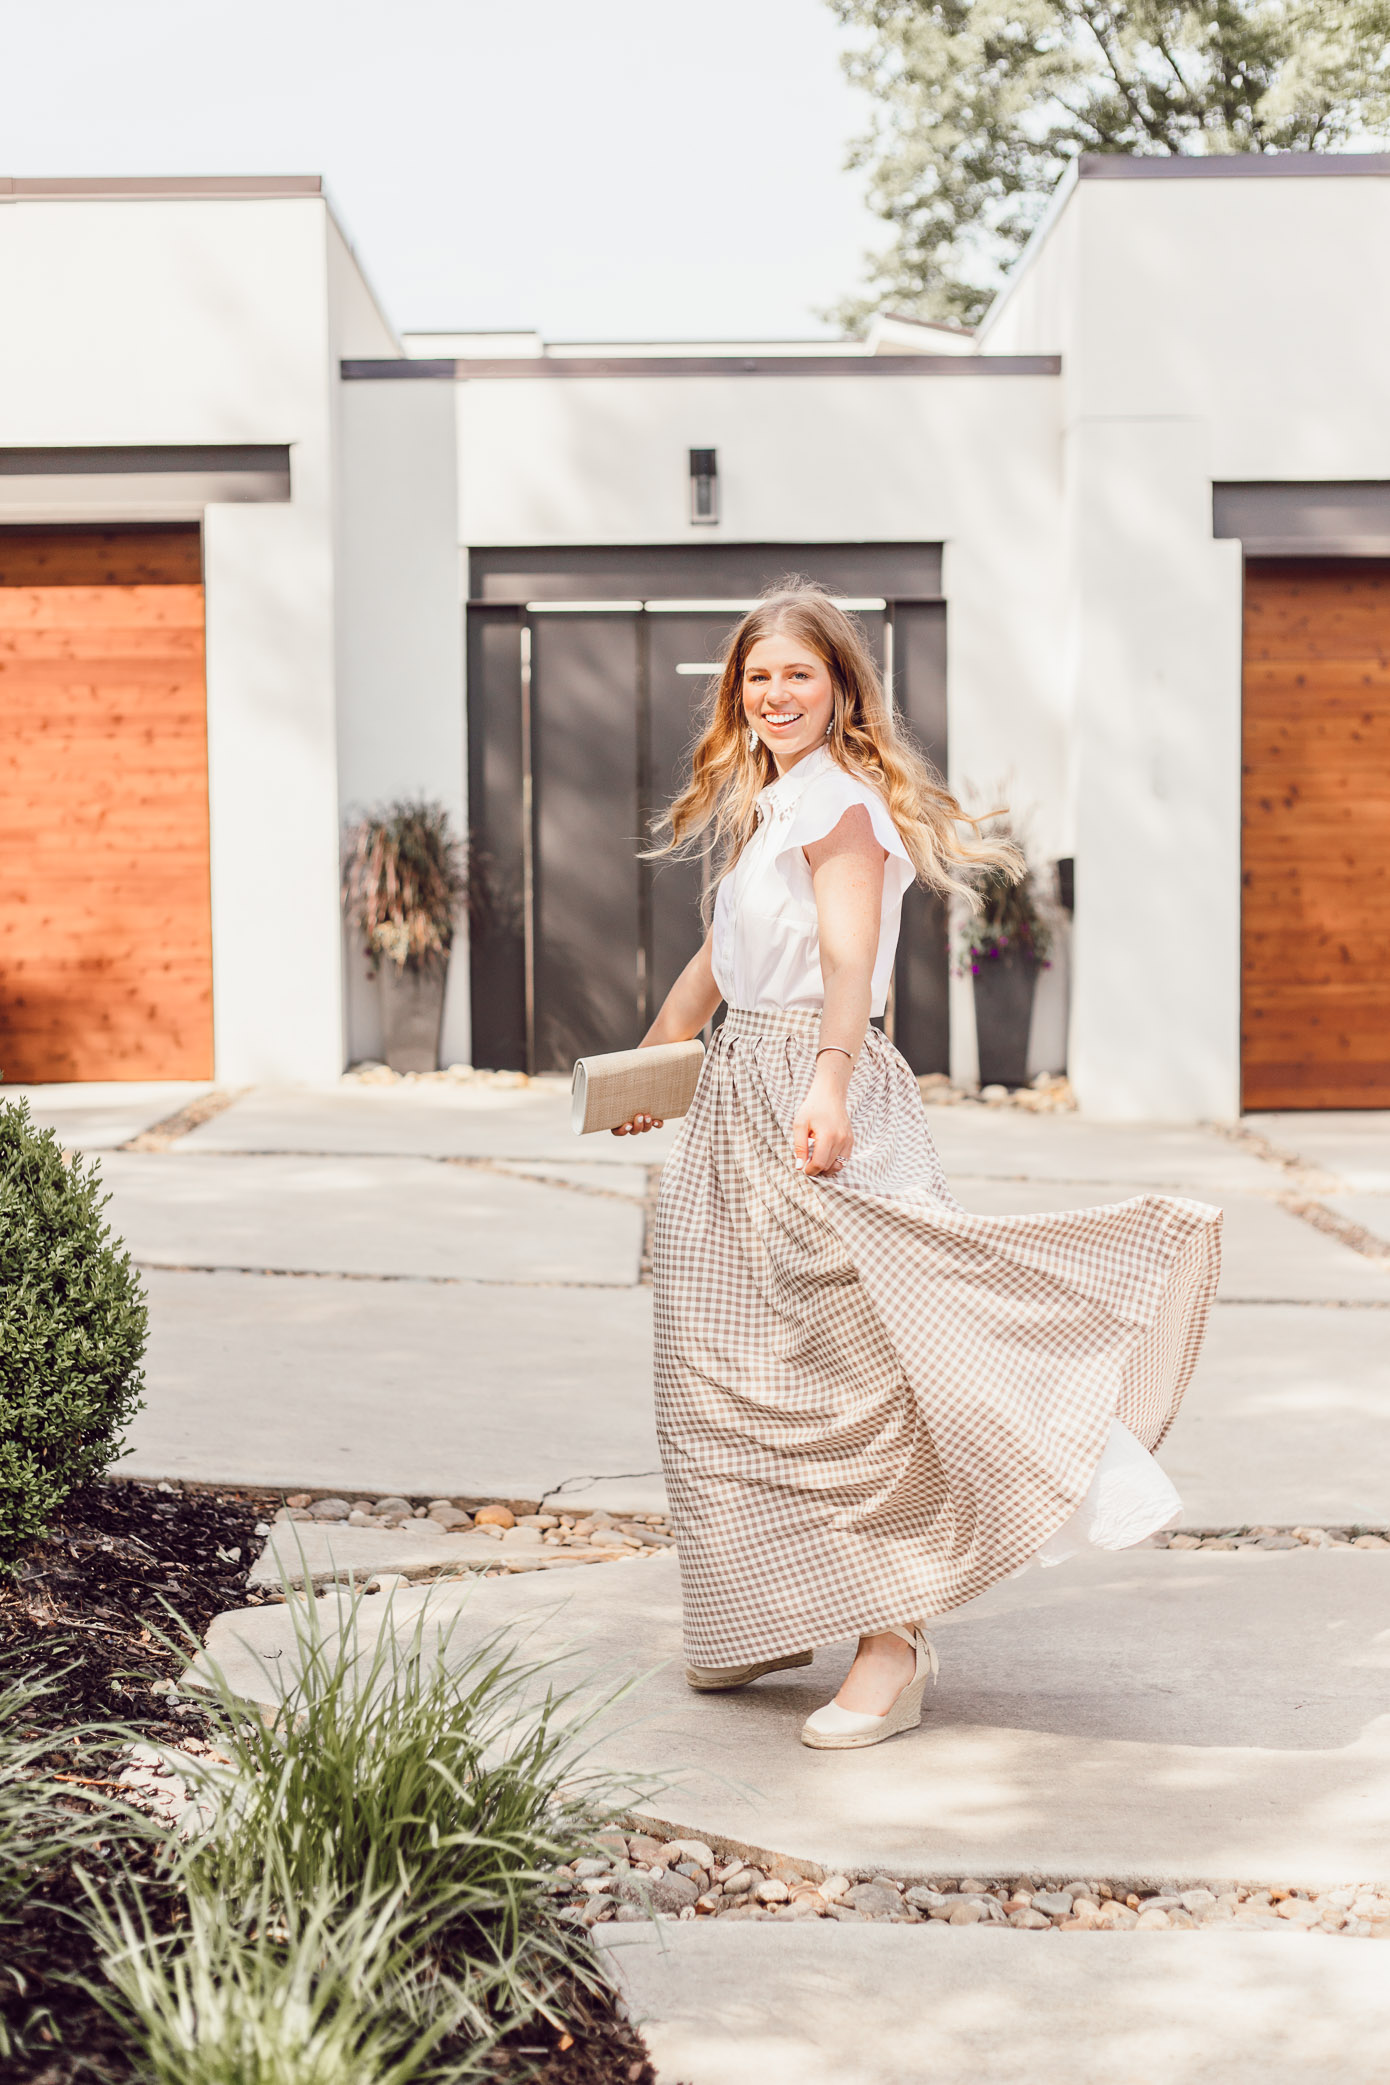 How to Style a Maxi Skirt for Summer - A Summer Gingham Maxi Skirt styled by Laura Leigh of Louella Reese #maxiskirt #gingham #southernstyle